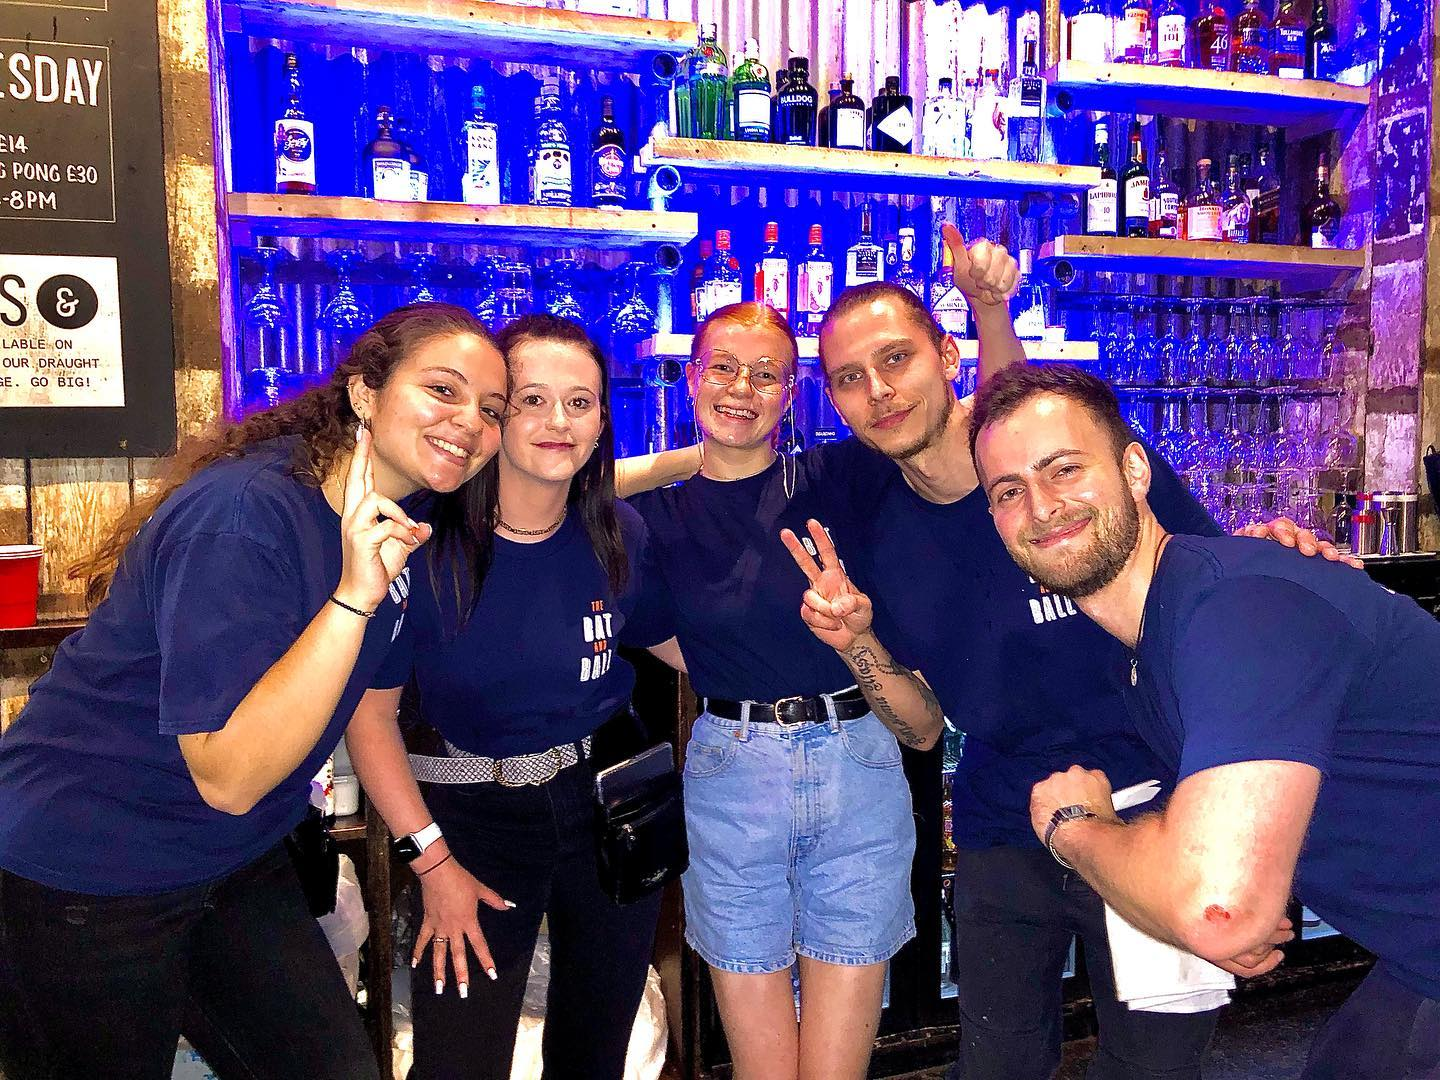 HAPPY TO BE BACK AND 😆🍻 BAR SERVICE BACK IN THE WORKS! . . We are so glad to see your wonderful faces at the bar and being able to order directly with us!!!  . . The team has been working really hard to bring back the good old fashion bar experience!,so come down and GIVE US A VISIT!!! . . #barstaff #staff #pubsoflondon #sportsbars #team #teamworkmakethedreamwork #beerstagram #beer #beeroclock #cocktails #batandball #batandballpub #batandballstratford #westfield #stratfordwestfield #friendshipgoals #alcoholics #happyhourtr #happyhour